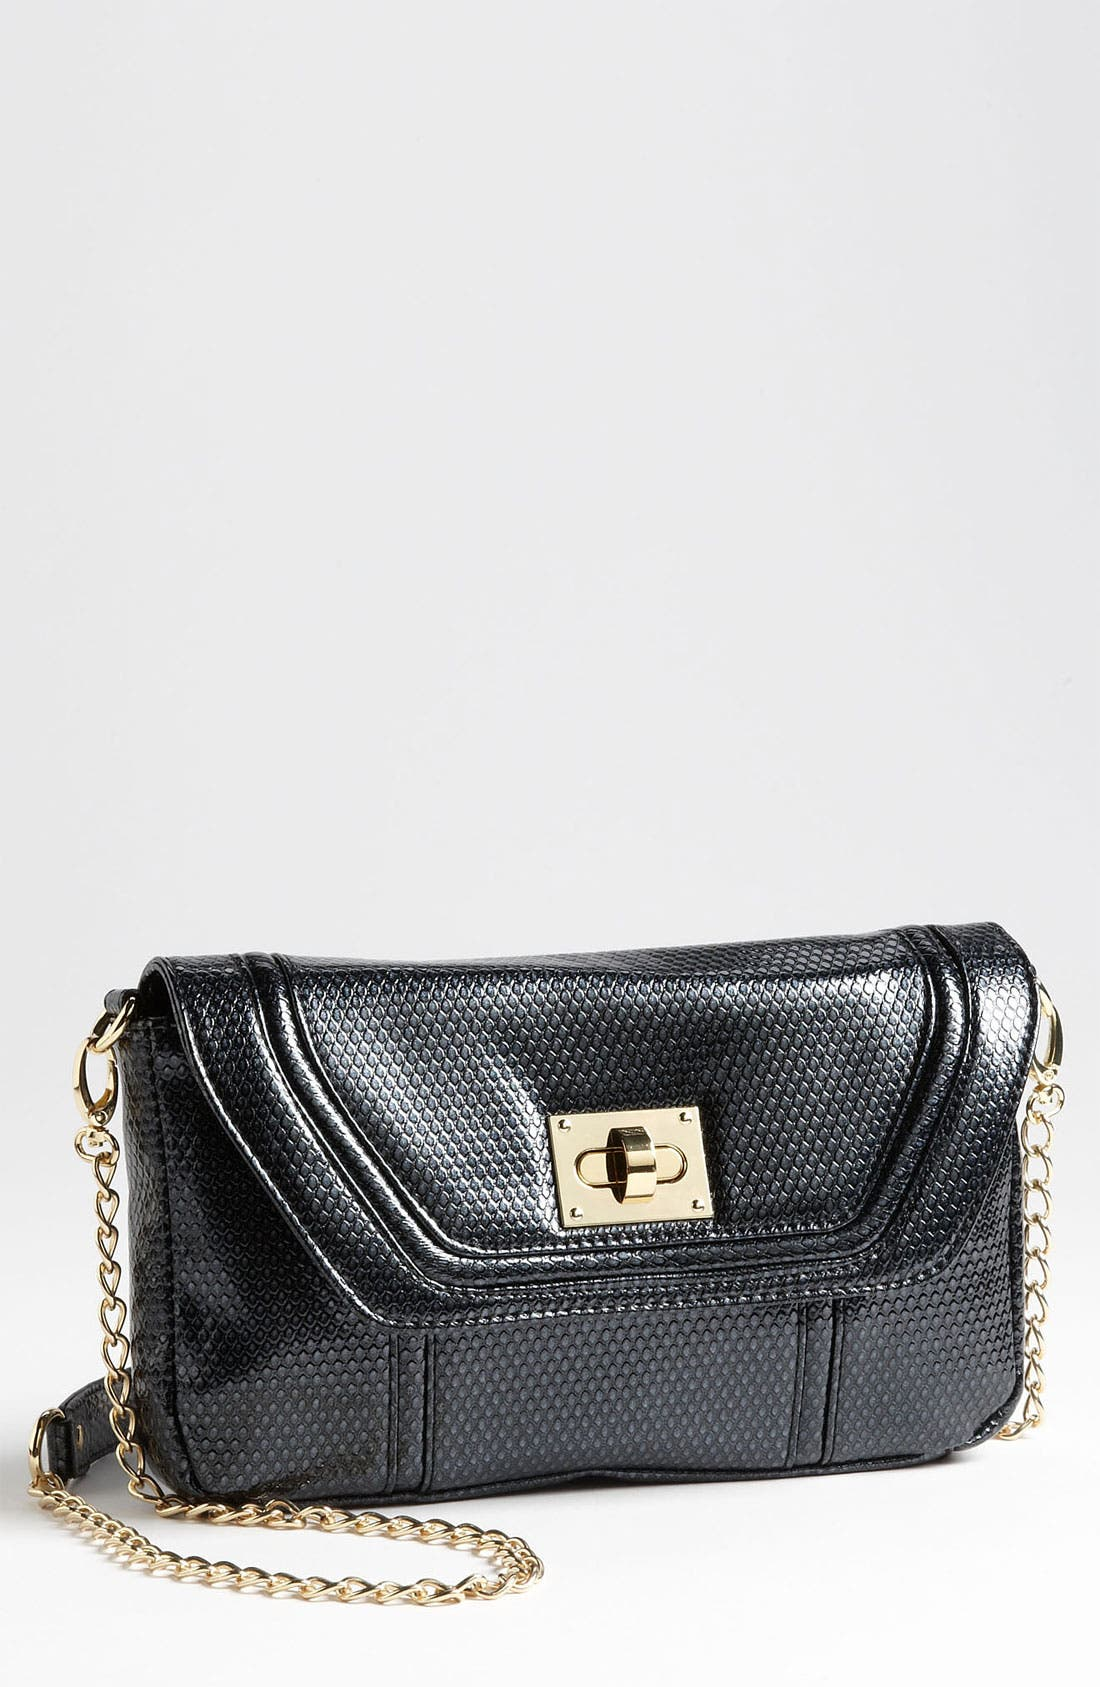 Main Image - Steven by Steve Madden 'Sugar' Snake Embossed Clutch